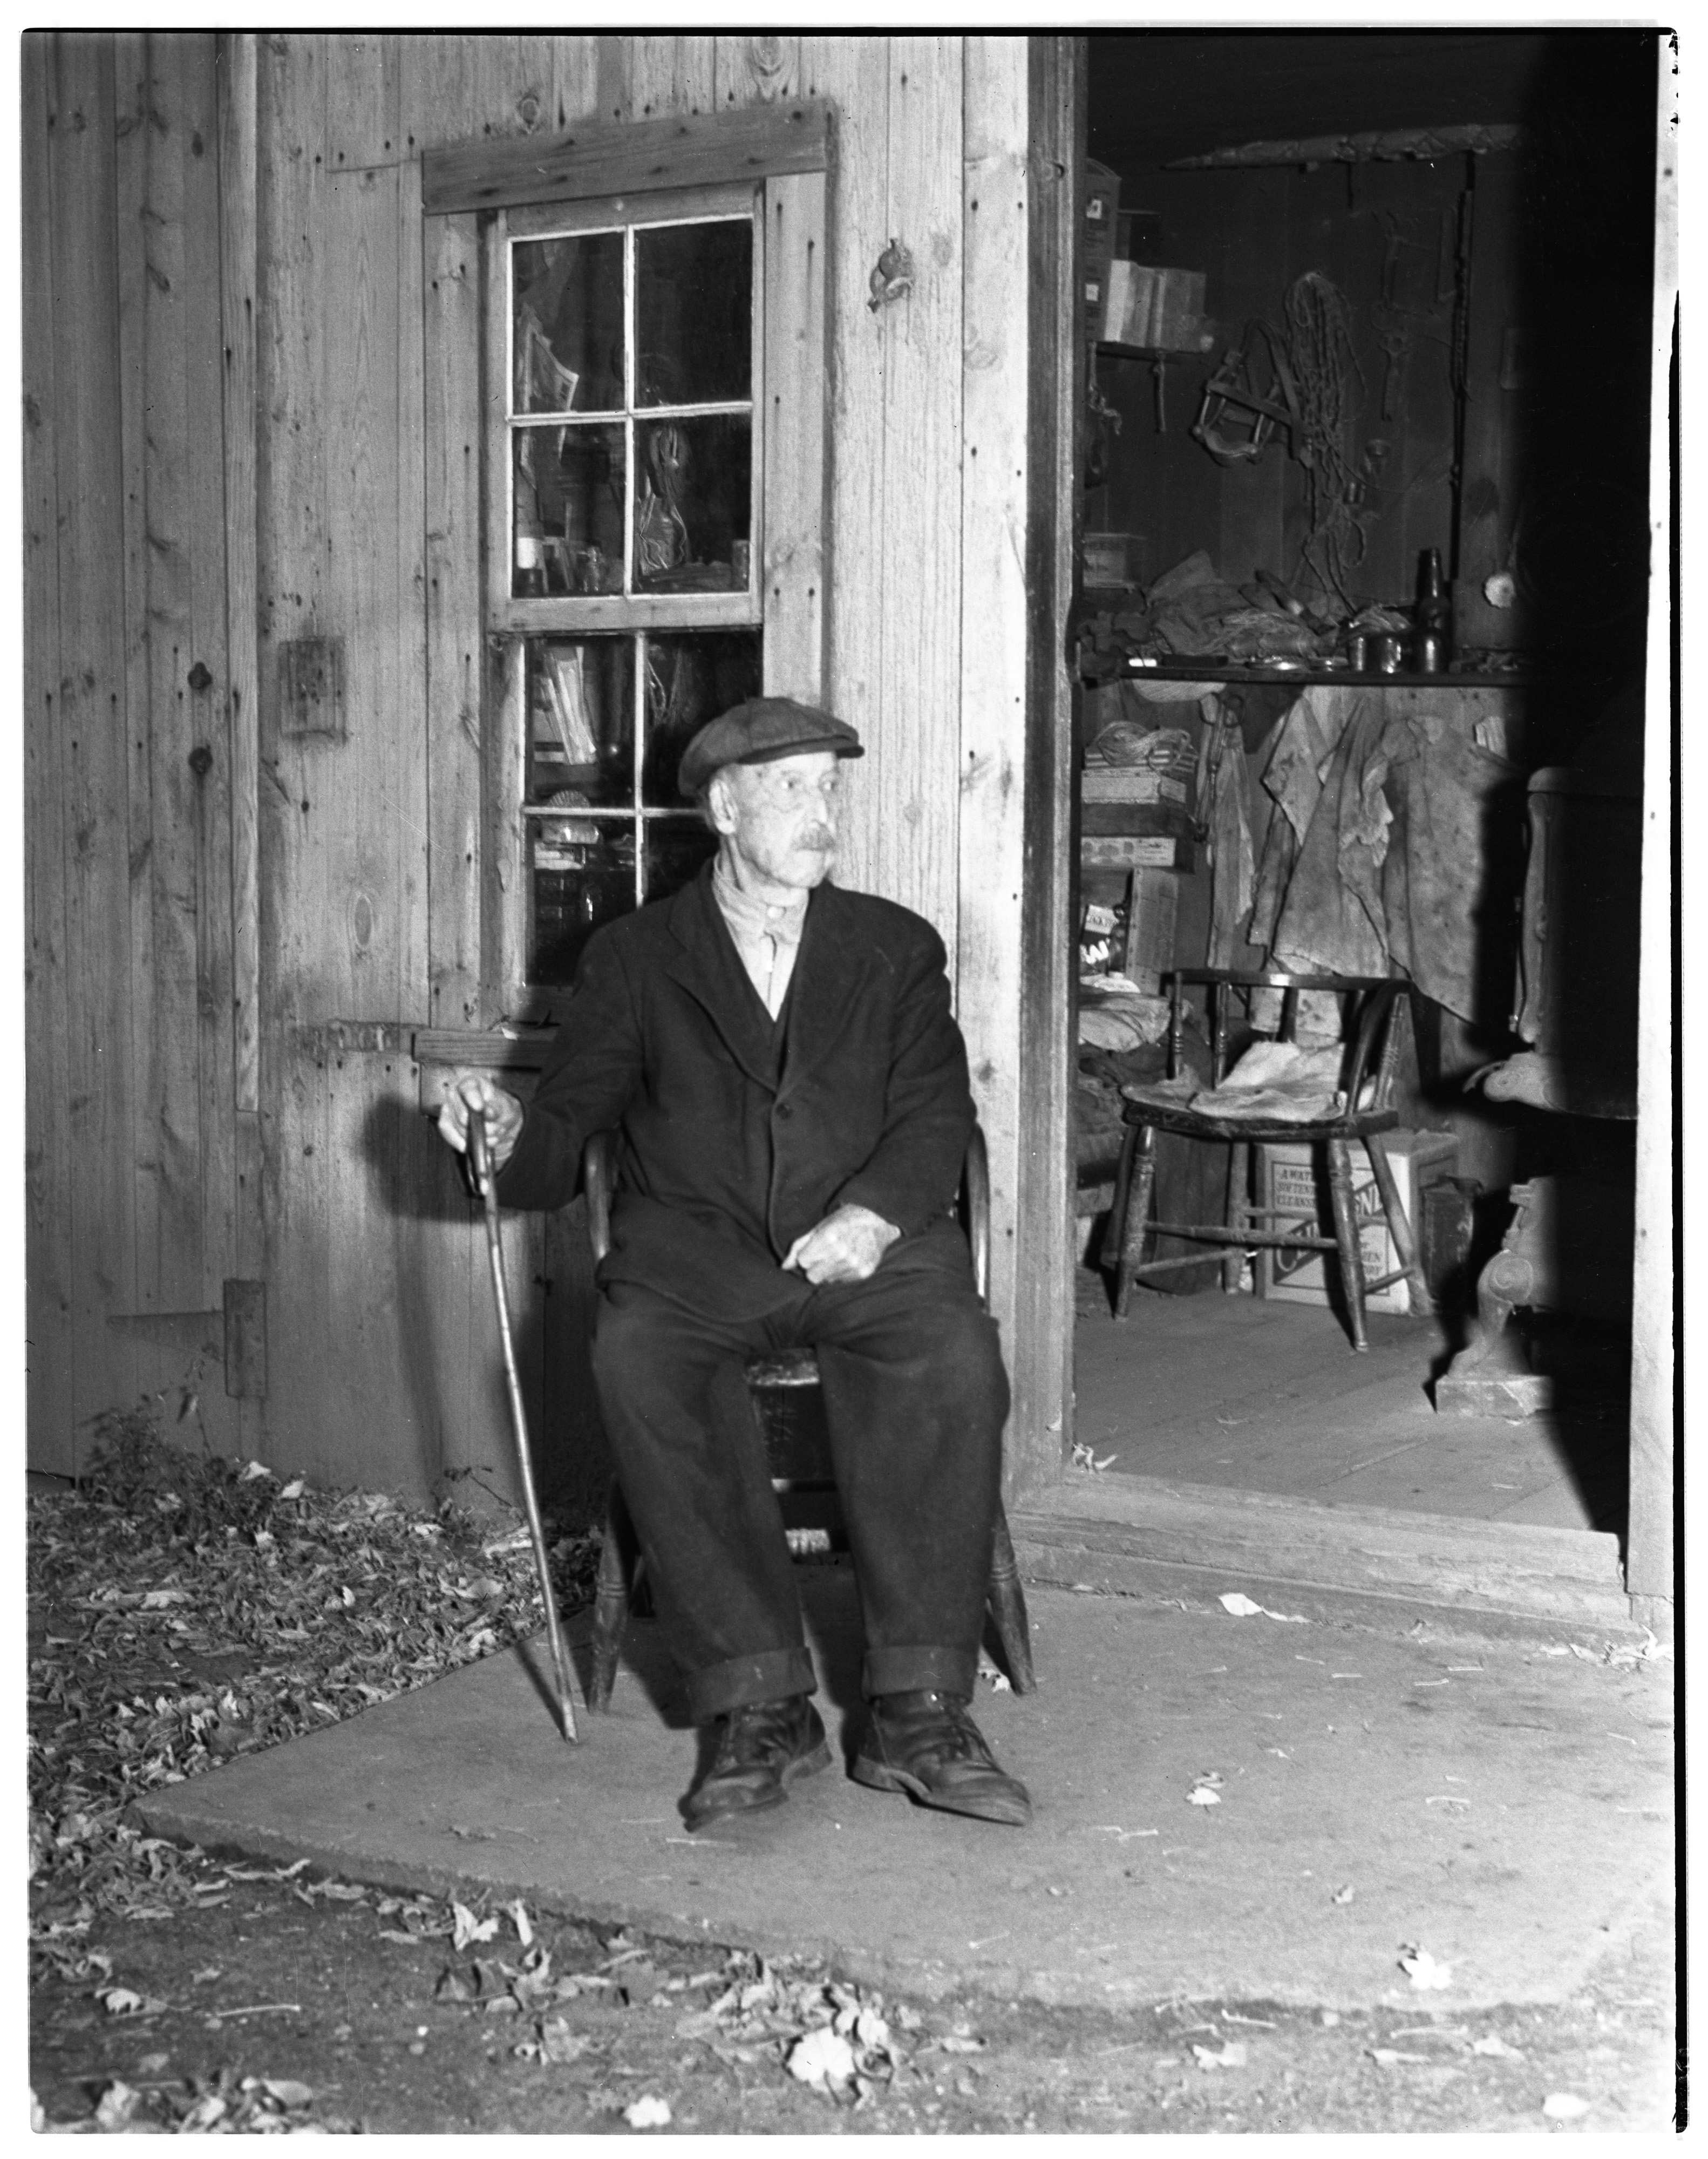 Daniels at Saline Veterinary, Oldest Resident, 1937 image